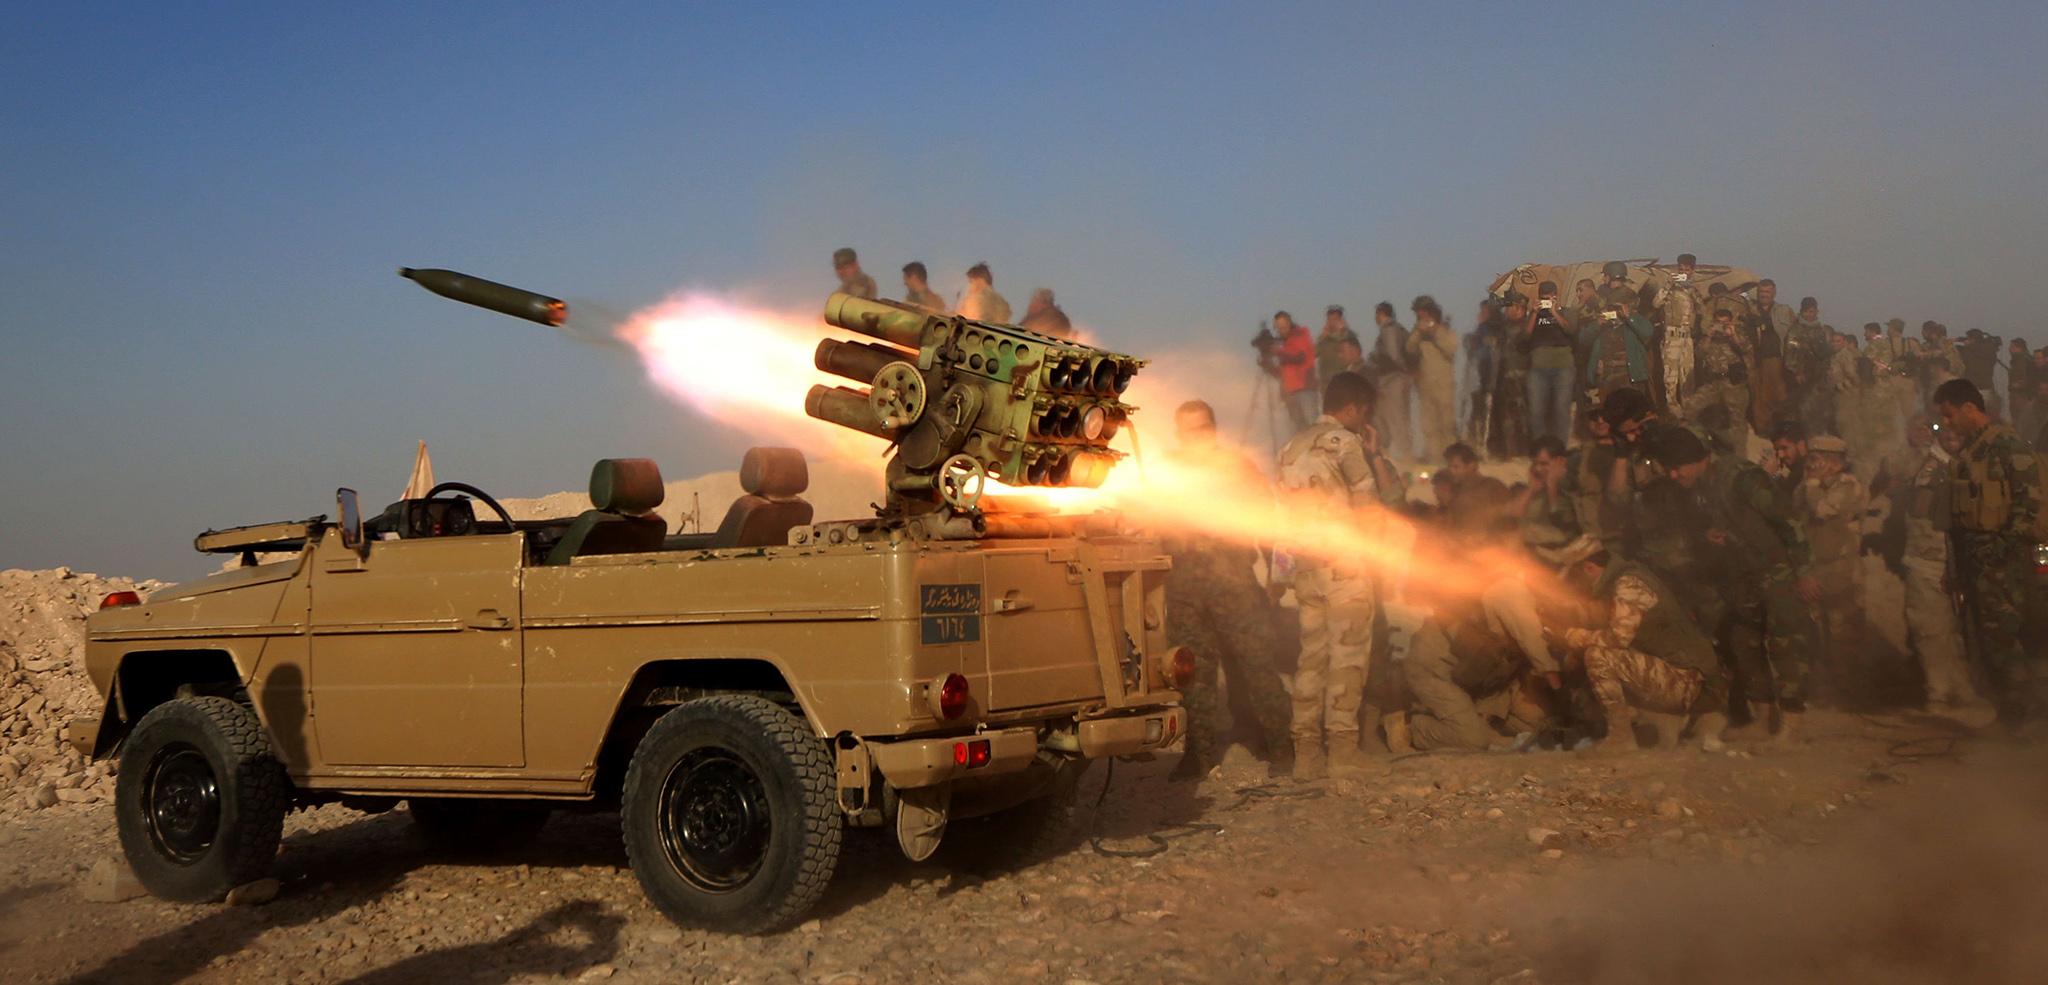 Iraqi Kurdish Peshmerga fighters fire a multiple rocket launcher from a position in Sheikh Ali village near the town of Bashiqa, some 25 kilometres north east of Mosul during an operation against Islamic State group jihadists to retake the main hub city.